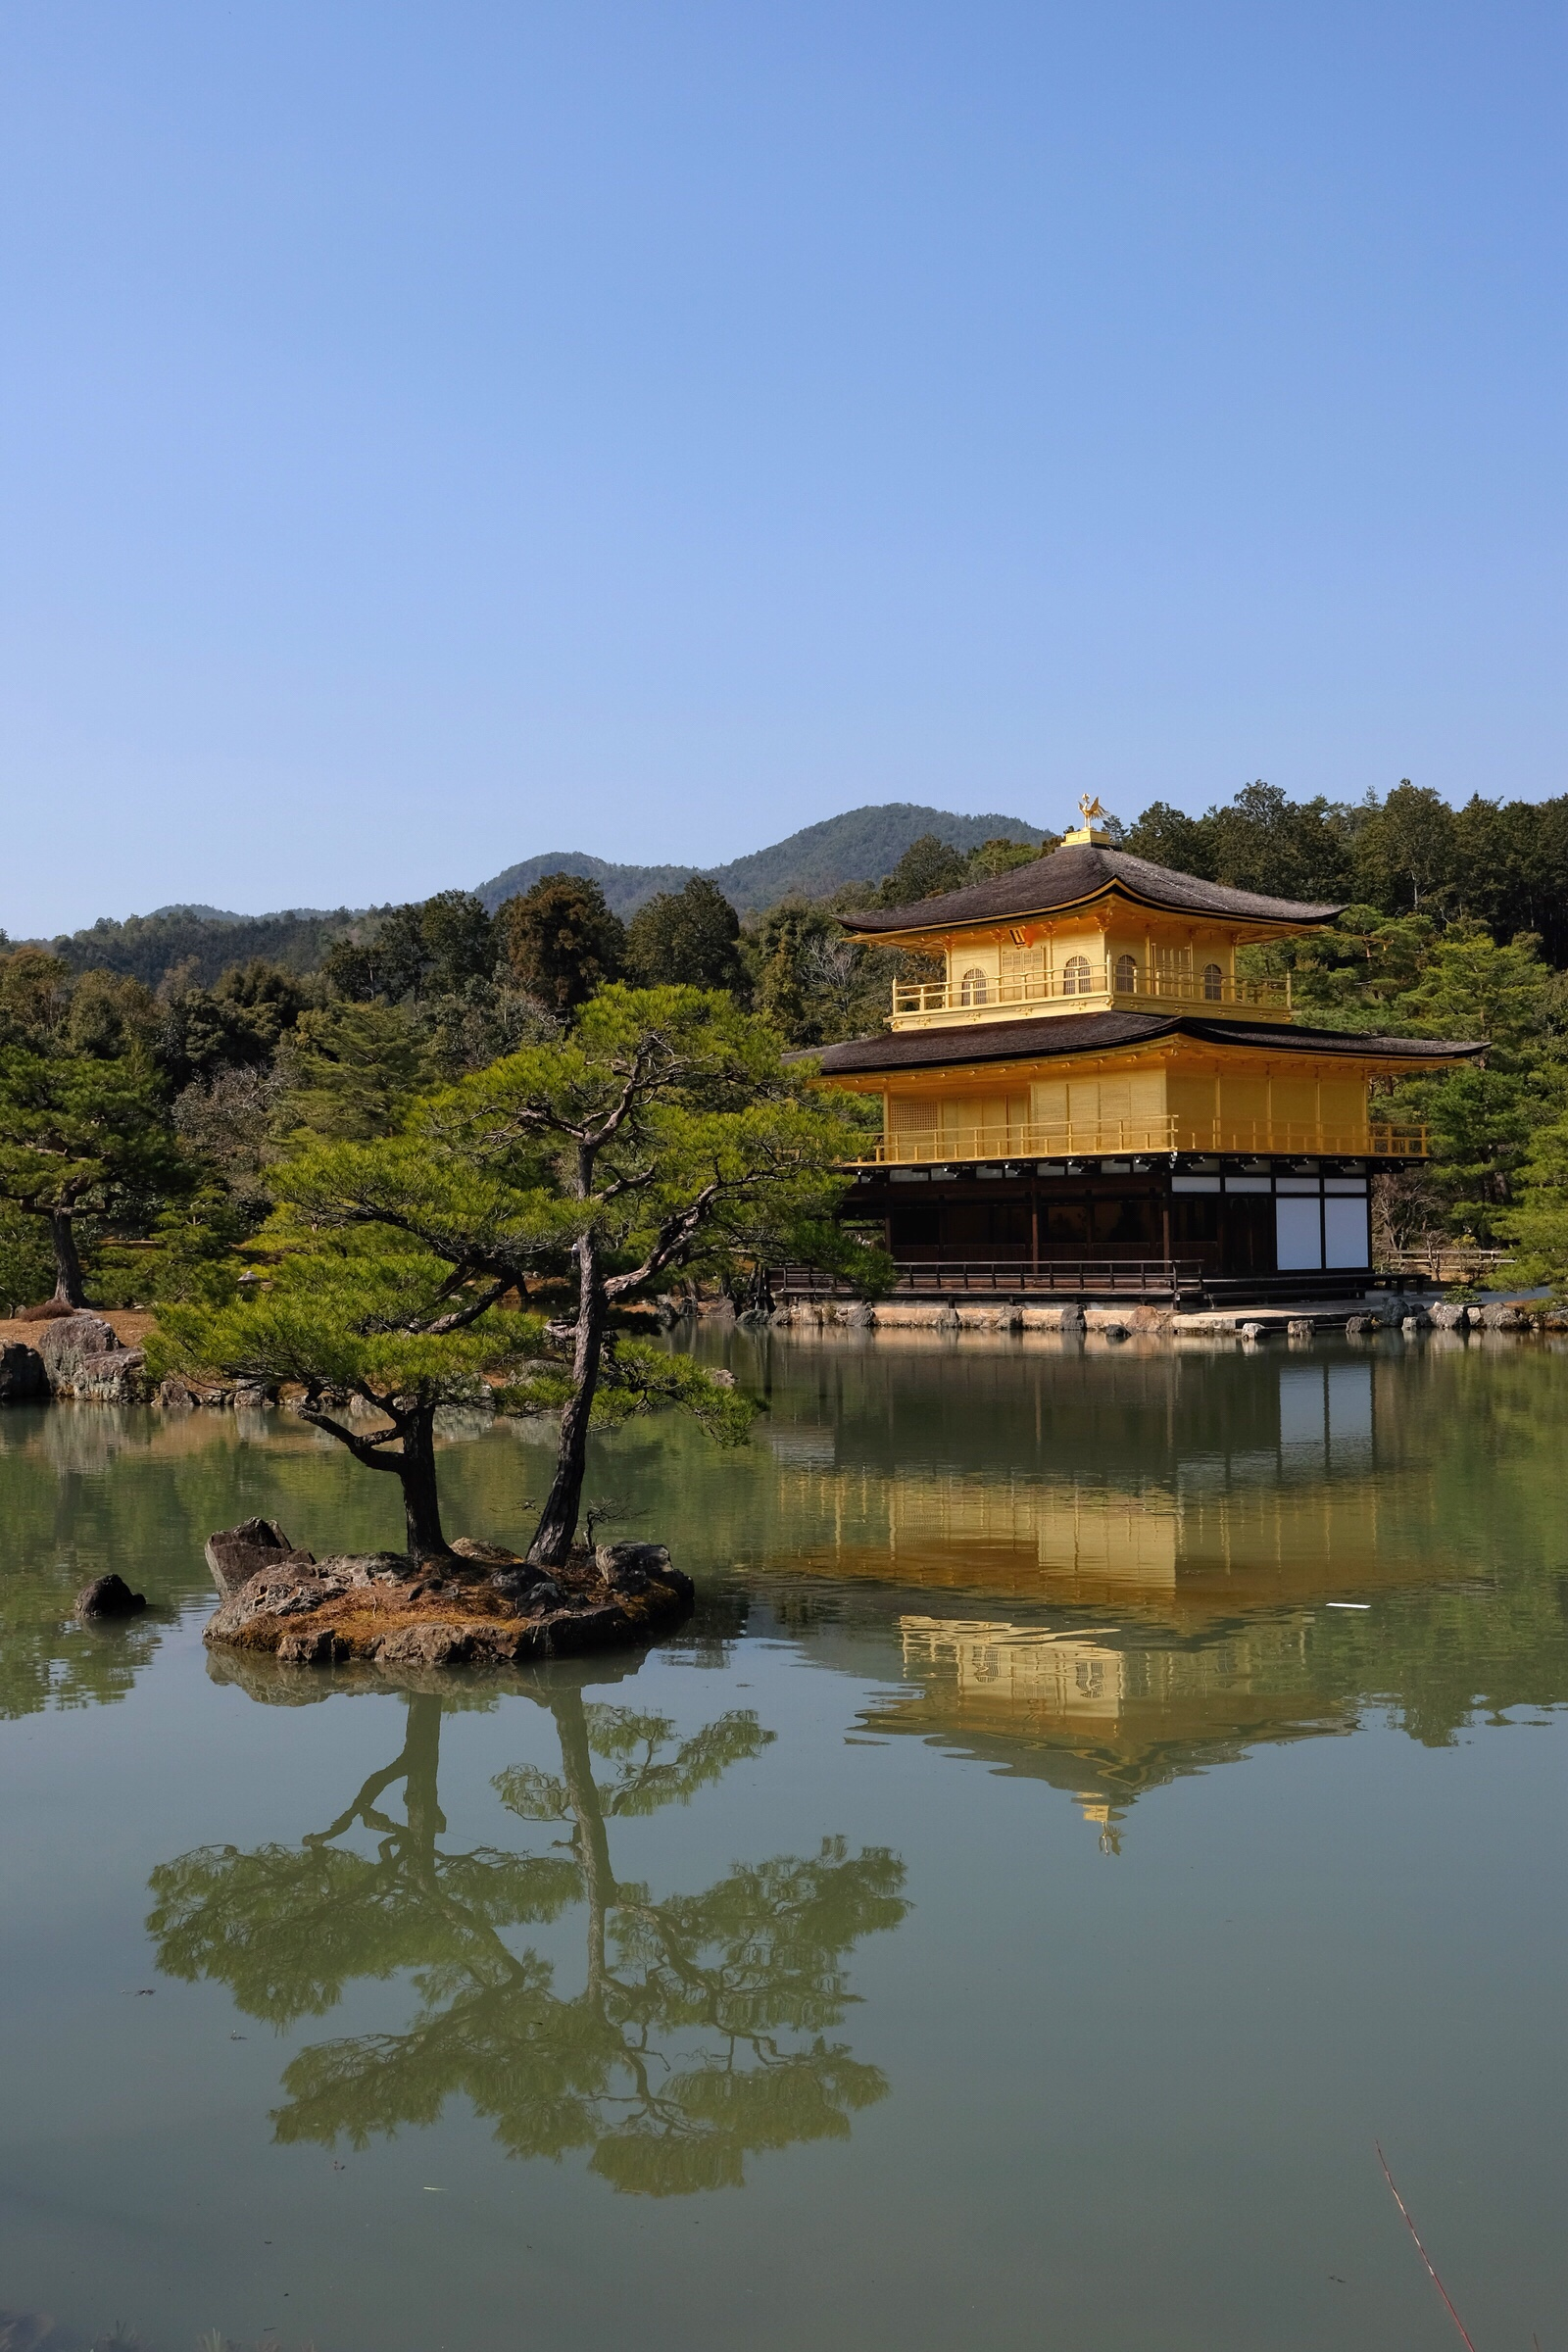 Japan - Kyoto - Kinkaku-ji - Golden Pavilion